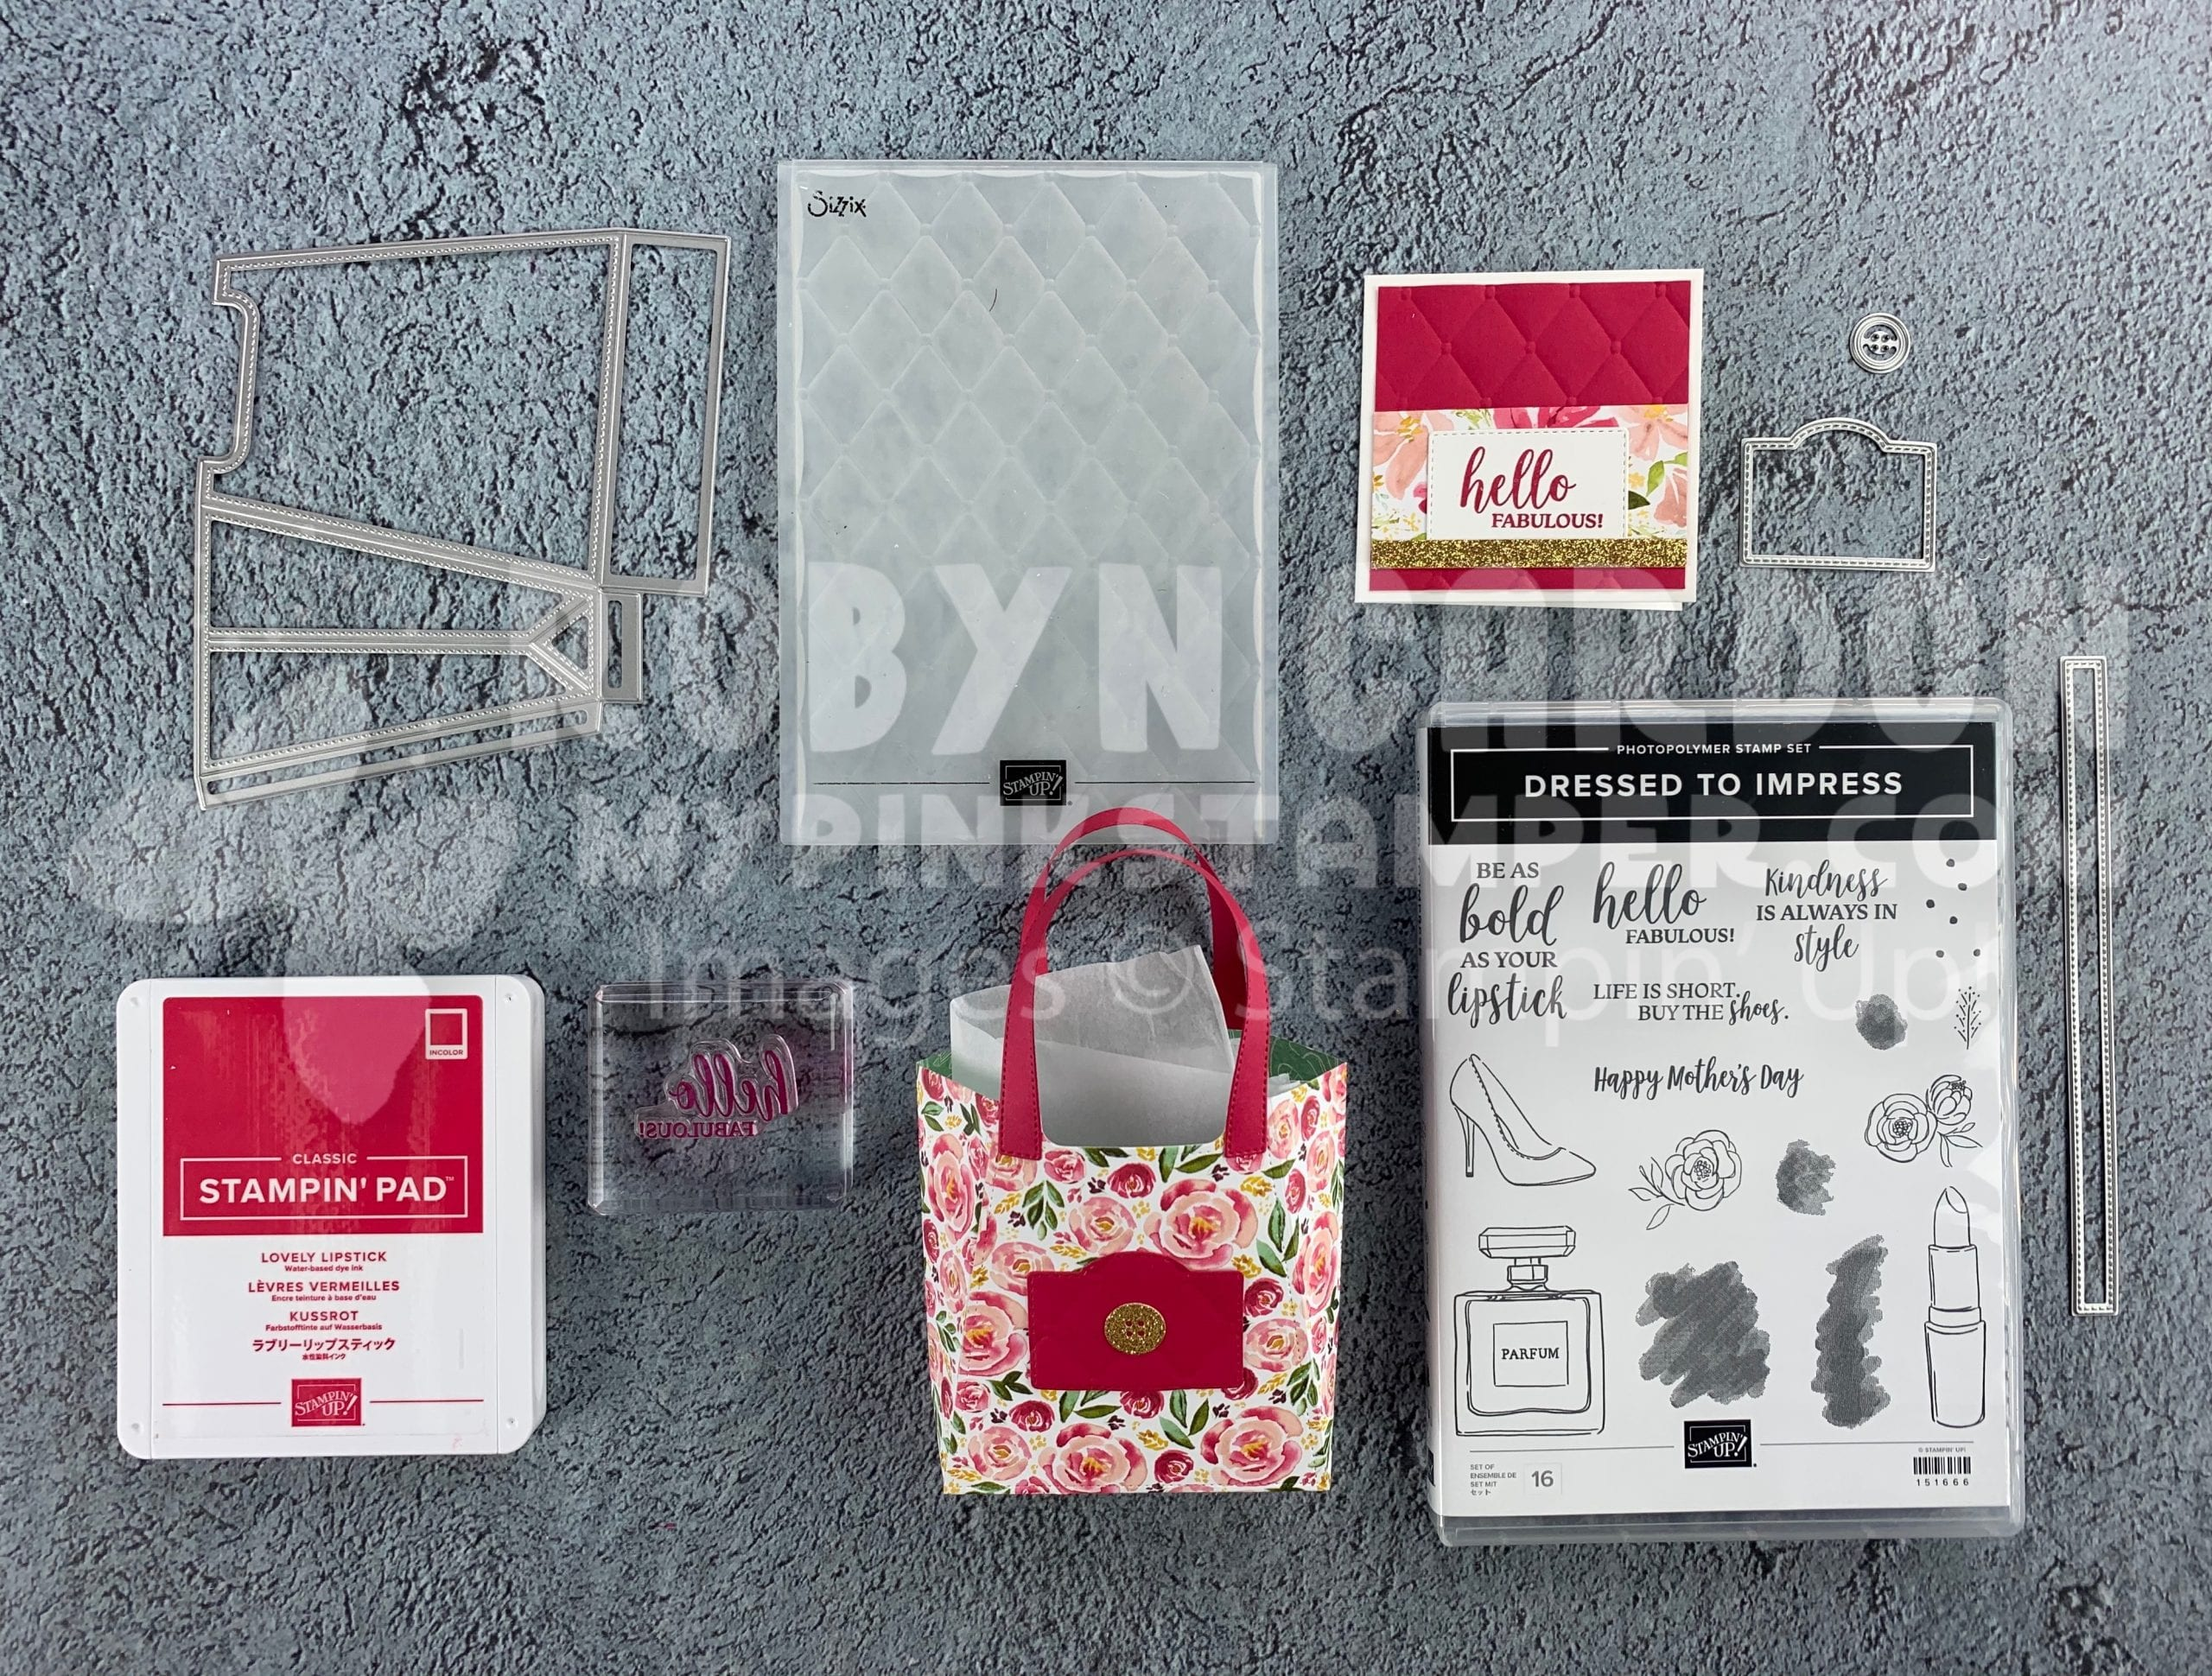 {VIDEO}Episode 758 – Stampin' Up! Dressed to Impress – Make a Purse Box!